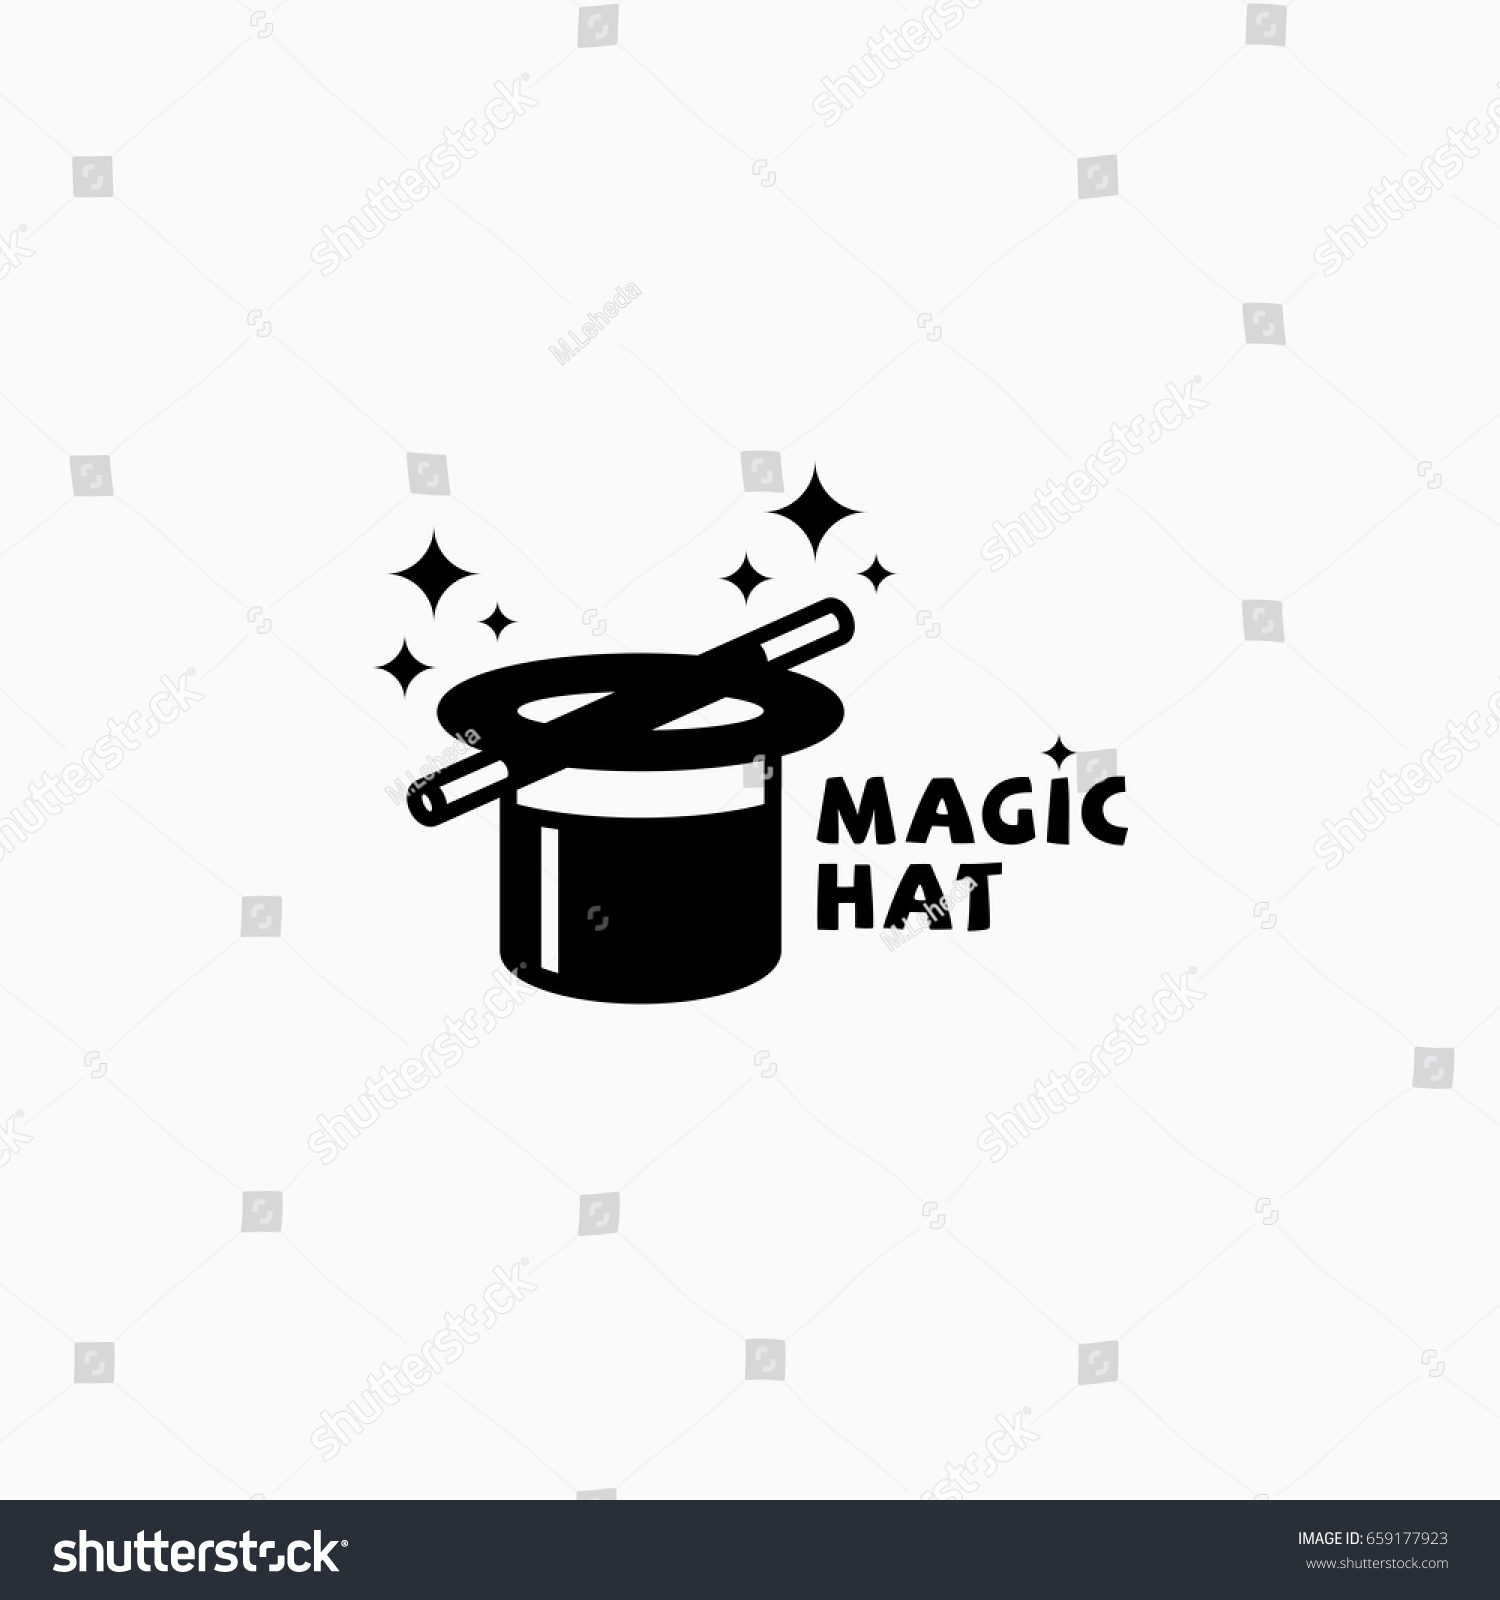 magic hat logo - photo #19